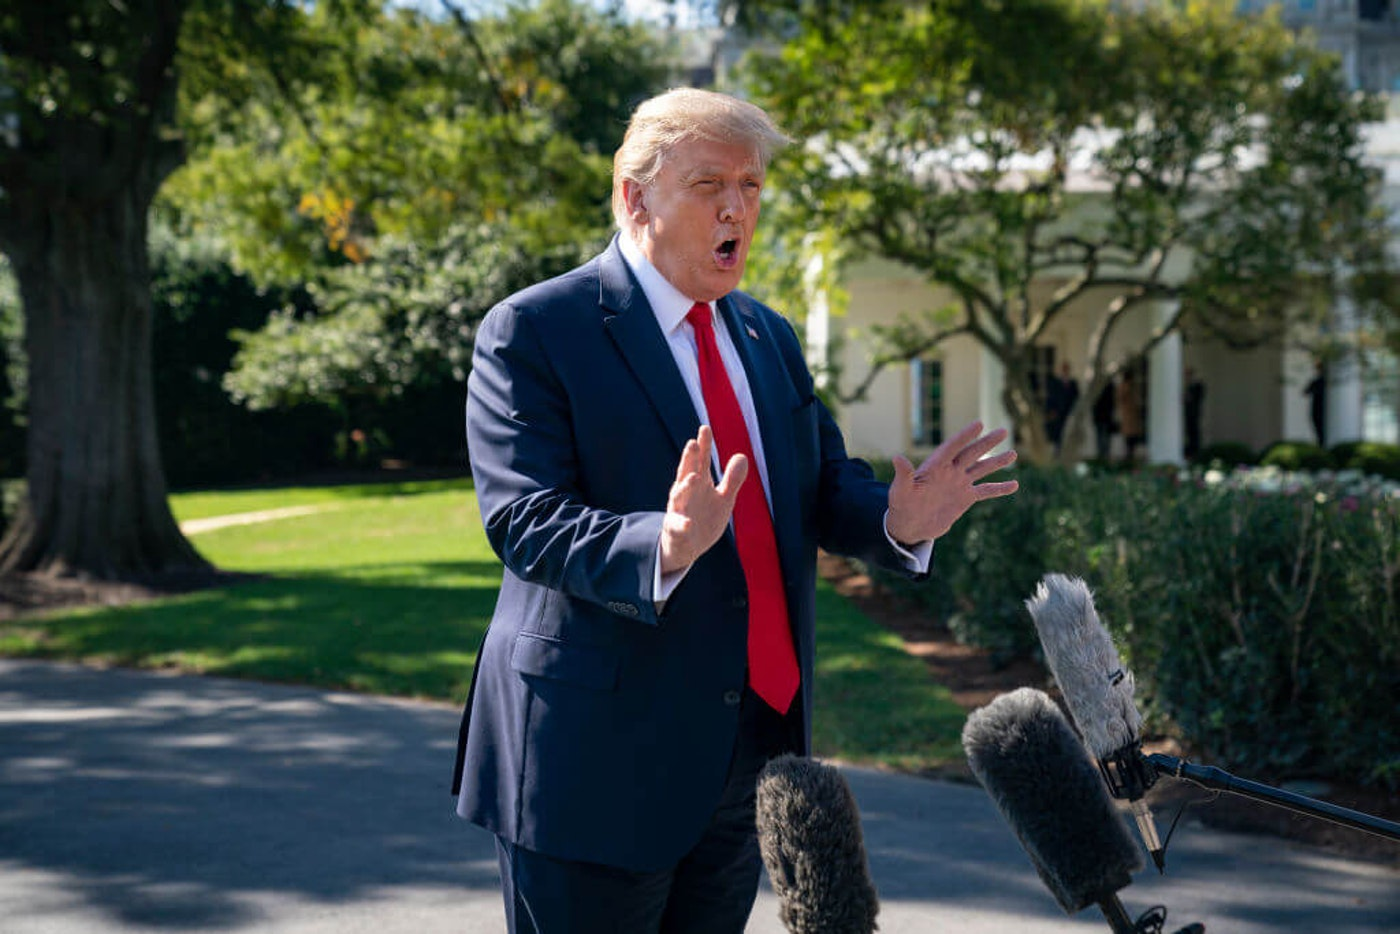 President Donald Trump speaks to reporters on his way to Marine One on the South Lawn of the White House on September 30, 2020 in Washington, DC. President Trump is traveling to Minnesota for a fundraising event and a campaign rally. (Photo by Drew Angerer/Getty Images)